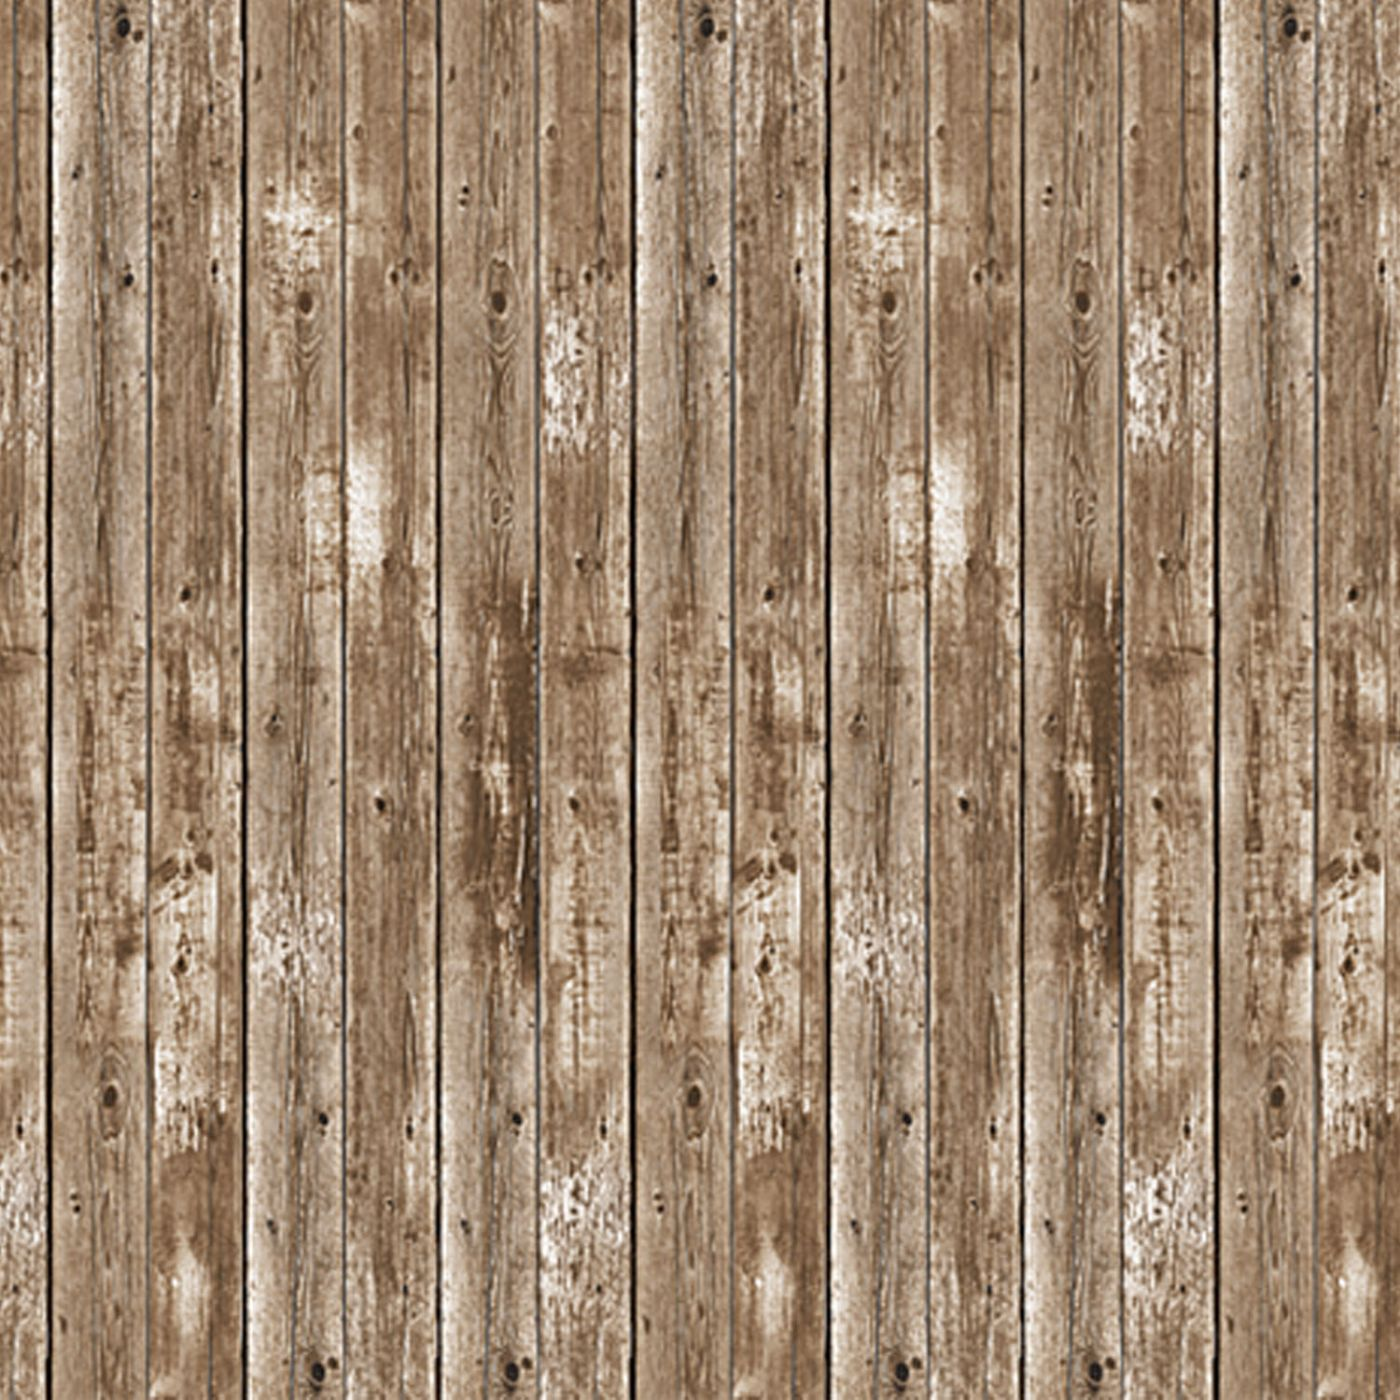 Barn Siding Backdrop (6) image